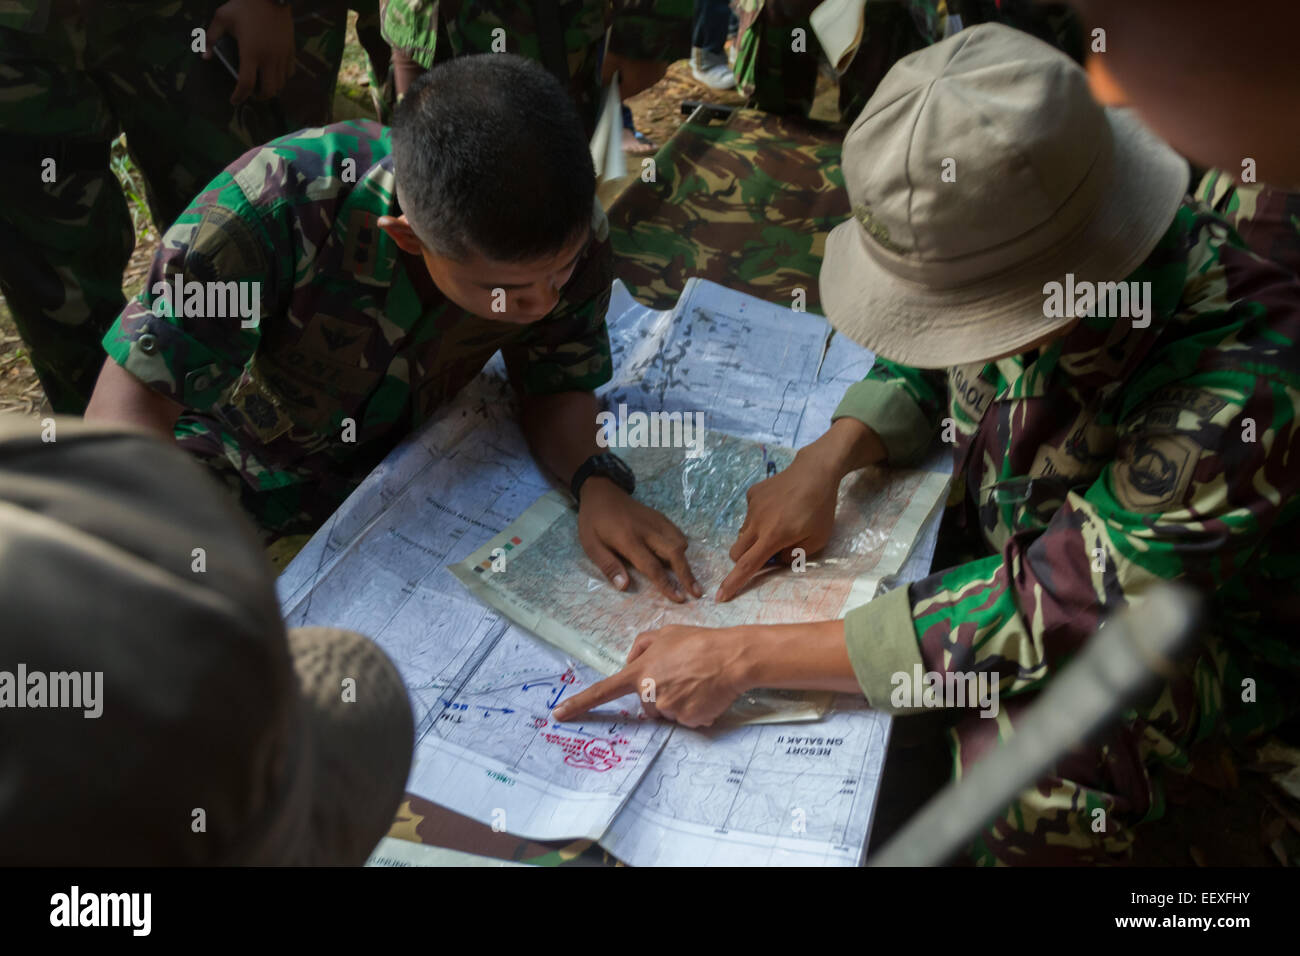 Indonesian marines plotting the Sukhoi Superjet 100 crash site on map in Mount Salak region, a day after the accident. - Stock Image